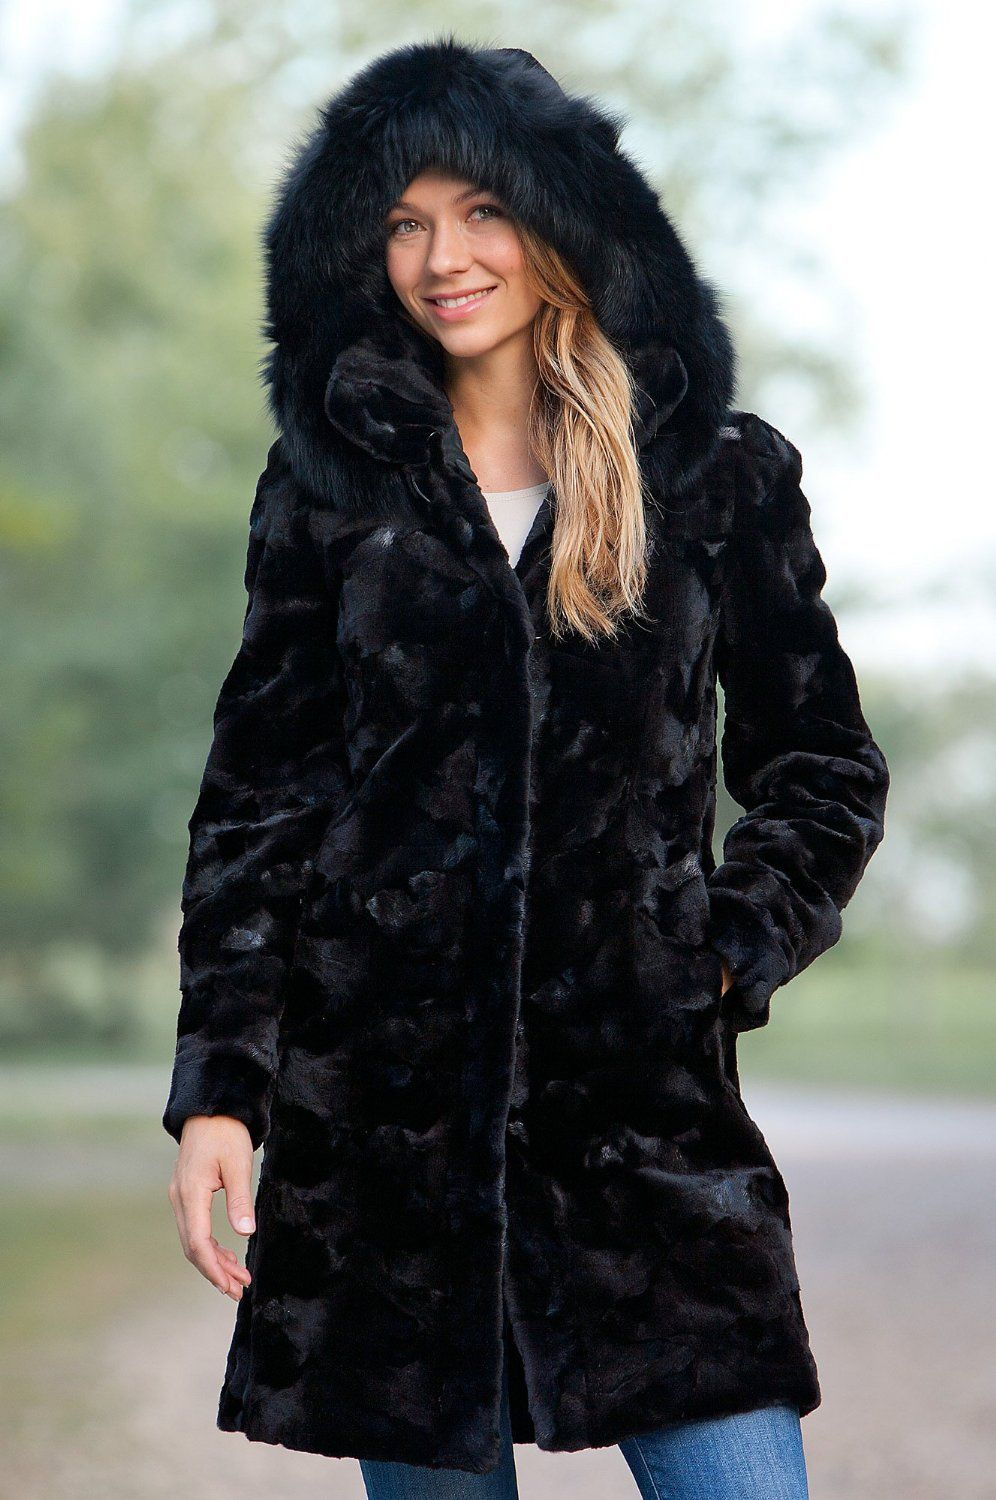 warmest winter coats for women | Womens Coats | Pinterest